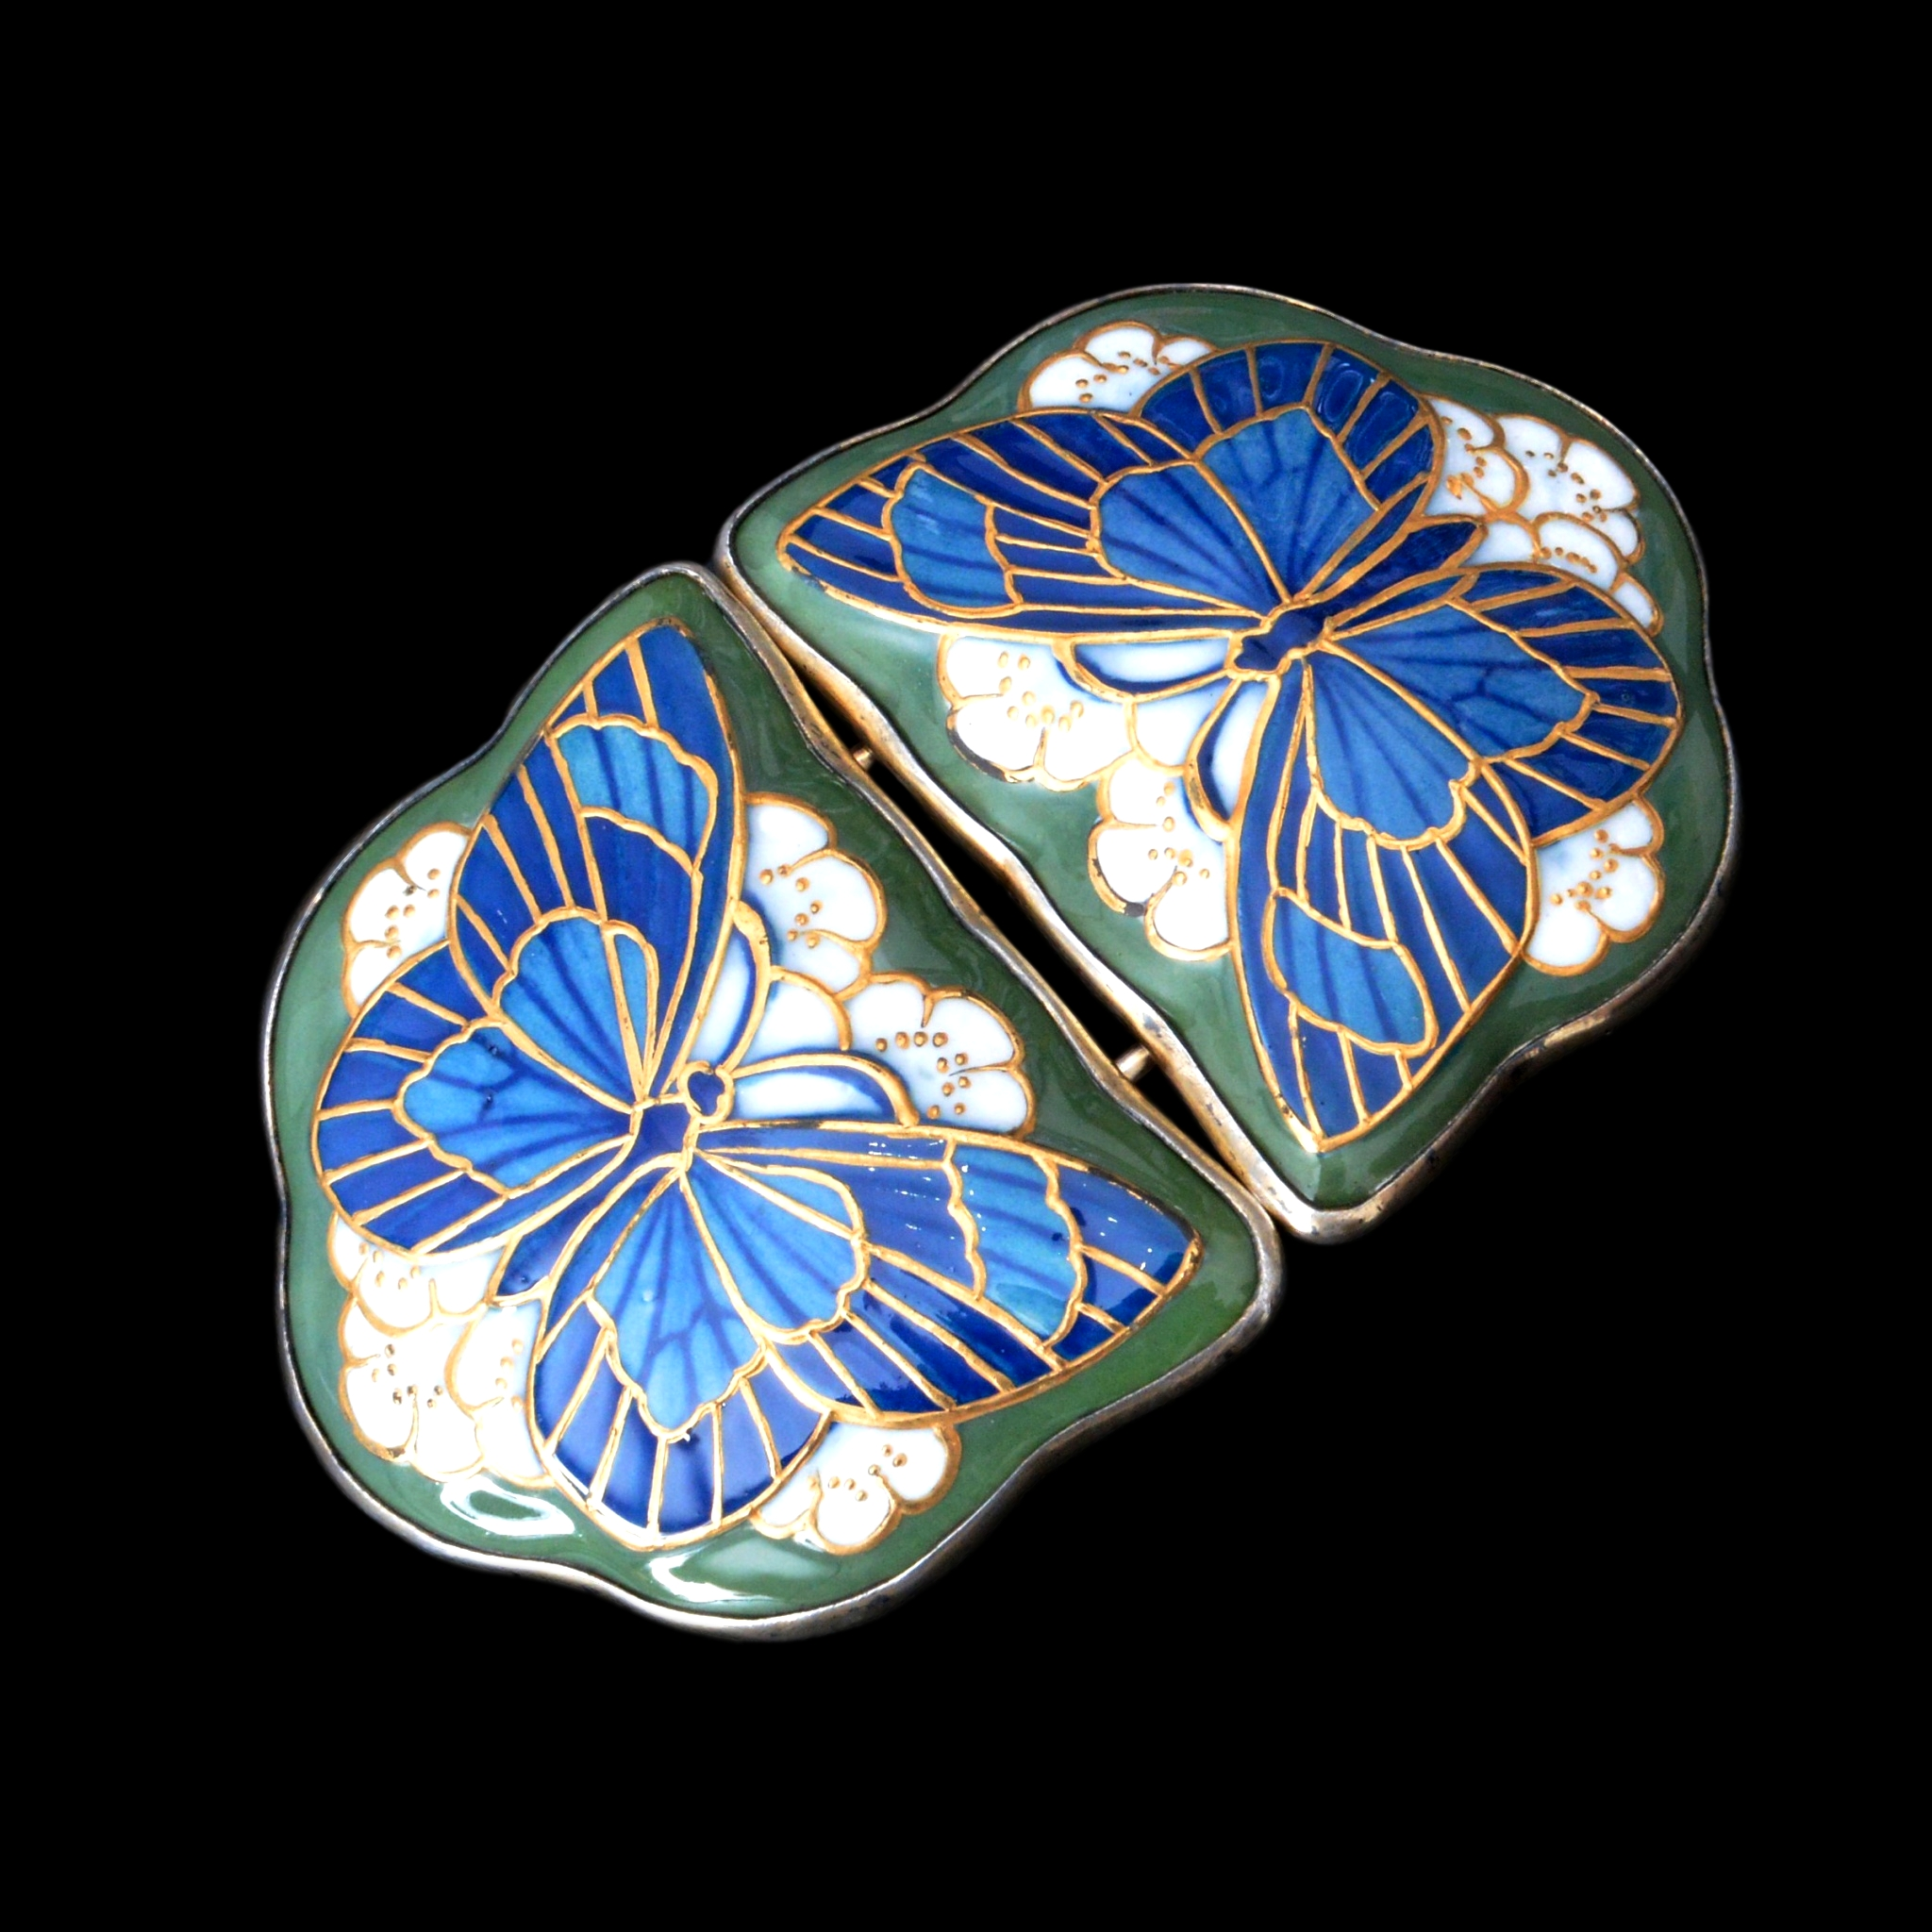 Christien Thomsen buckle, anton michelsen butterfly buckle